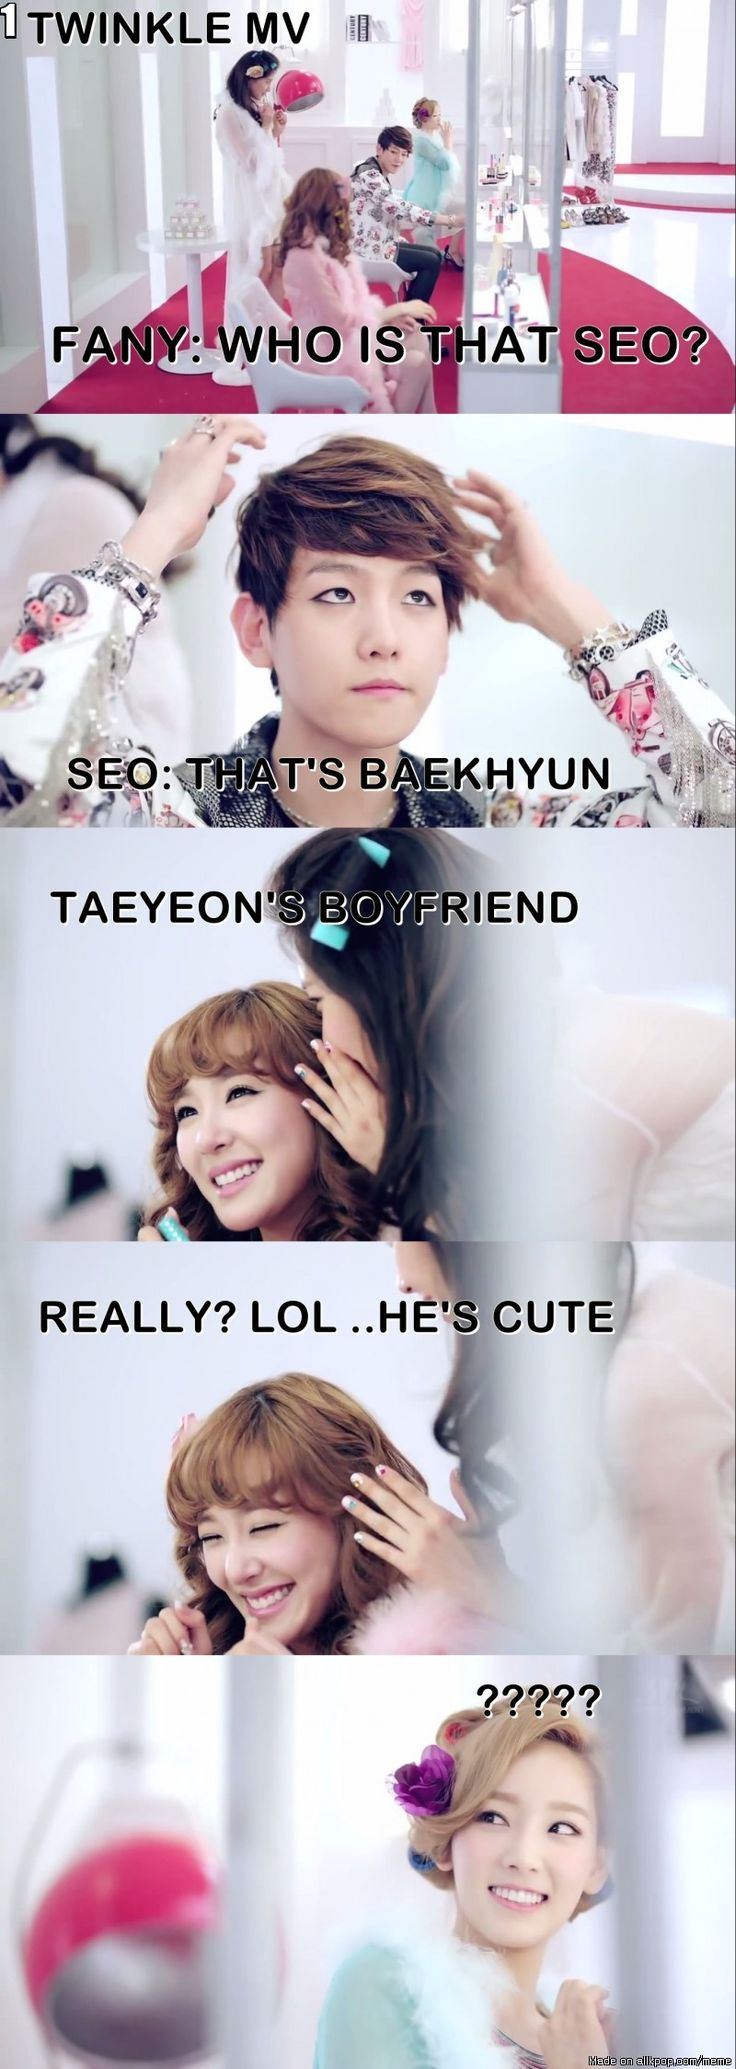 I FINALLY KNOW WHAT SEOHYUN SAID IN THAT MV!! IT MAKES SO MUCH SENSE!!